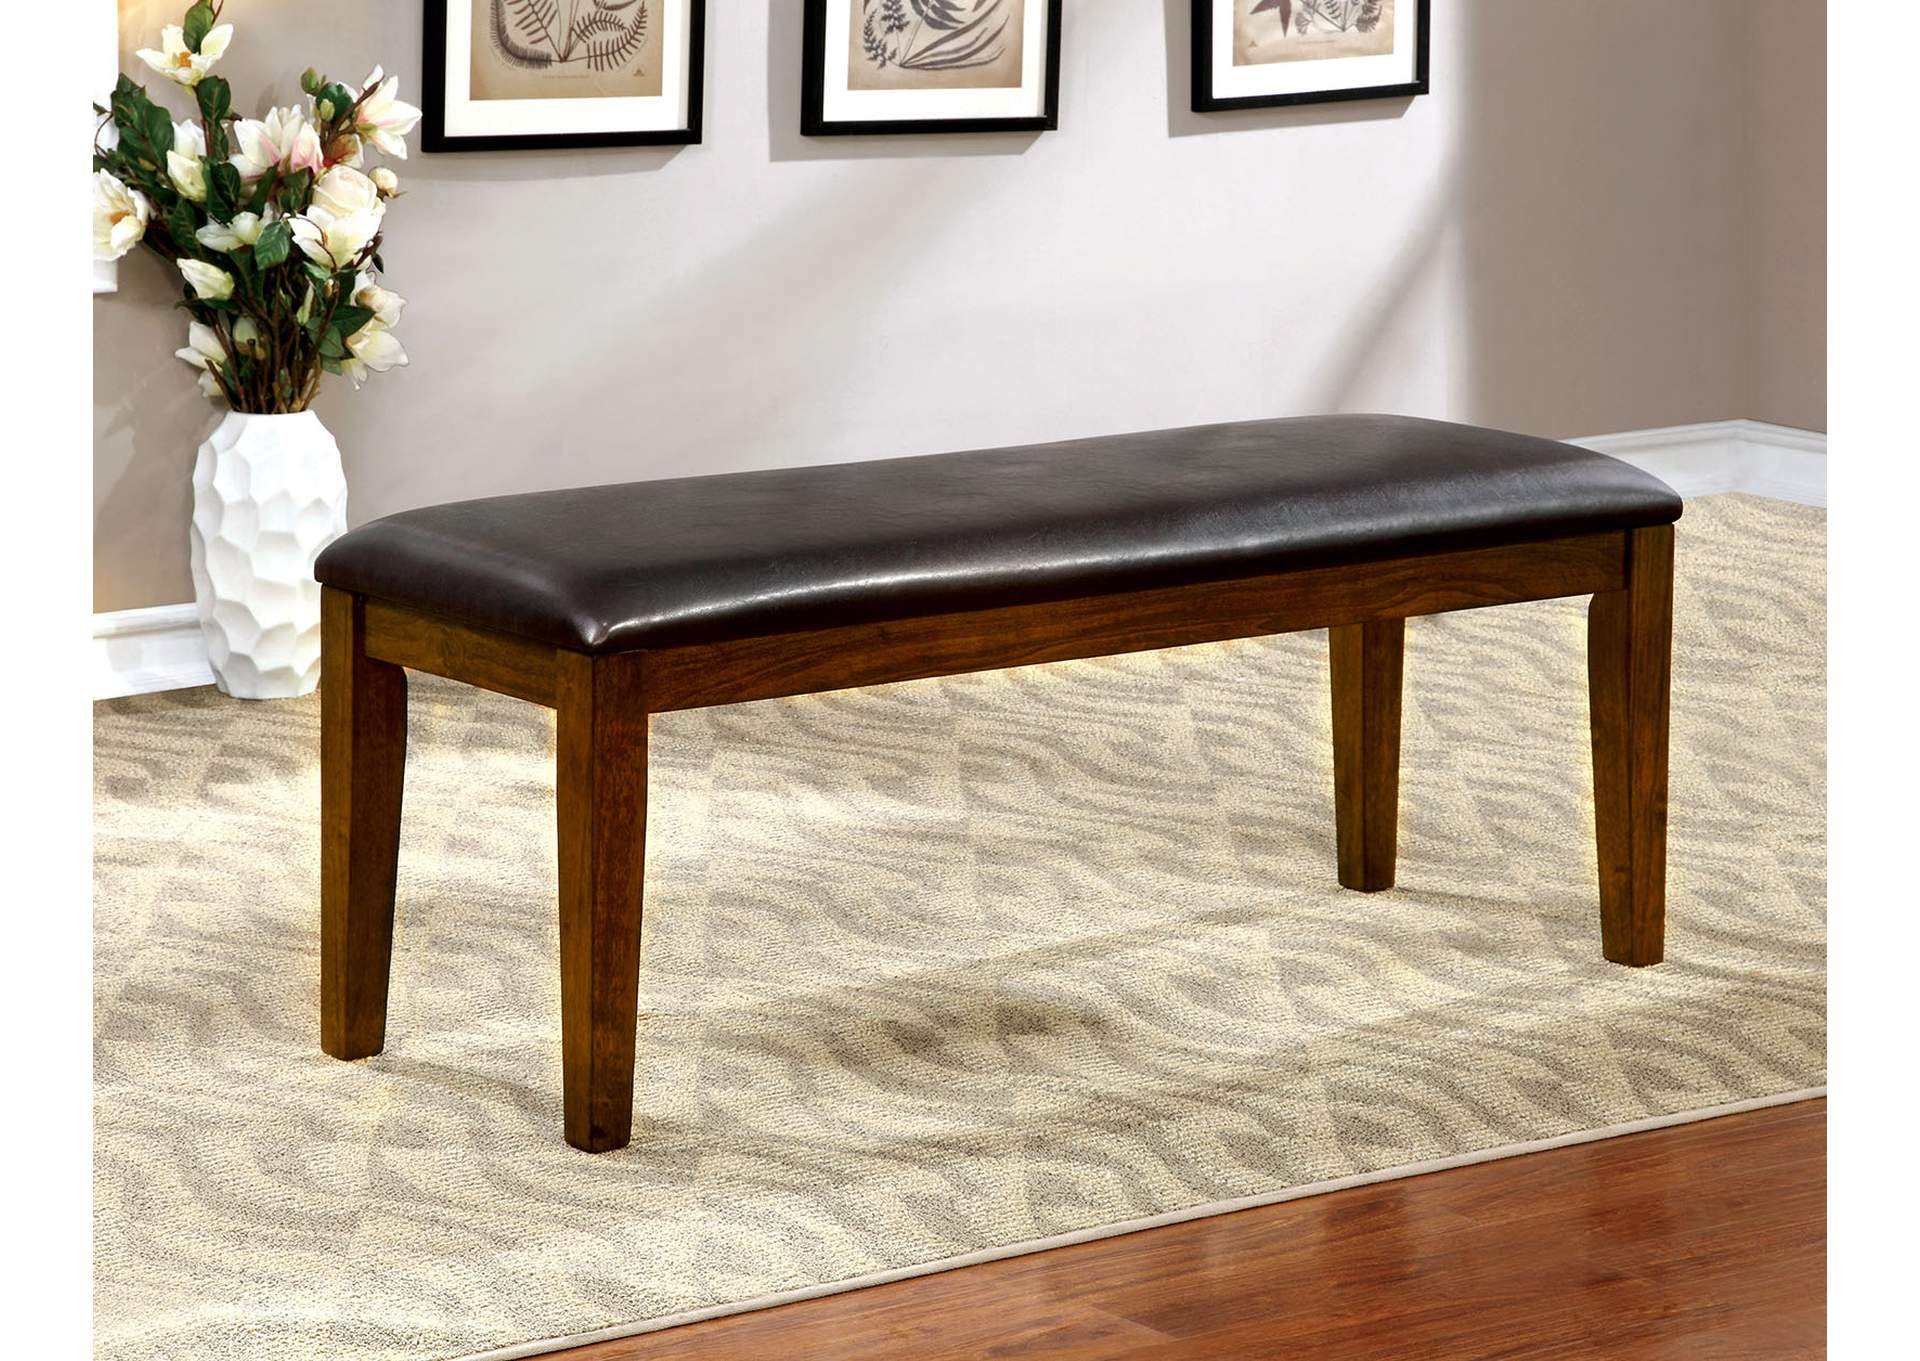 Hillsview I Brown Cherry Dining Bench,Furniture of America